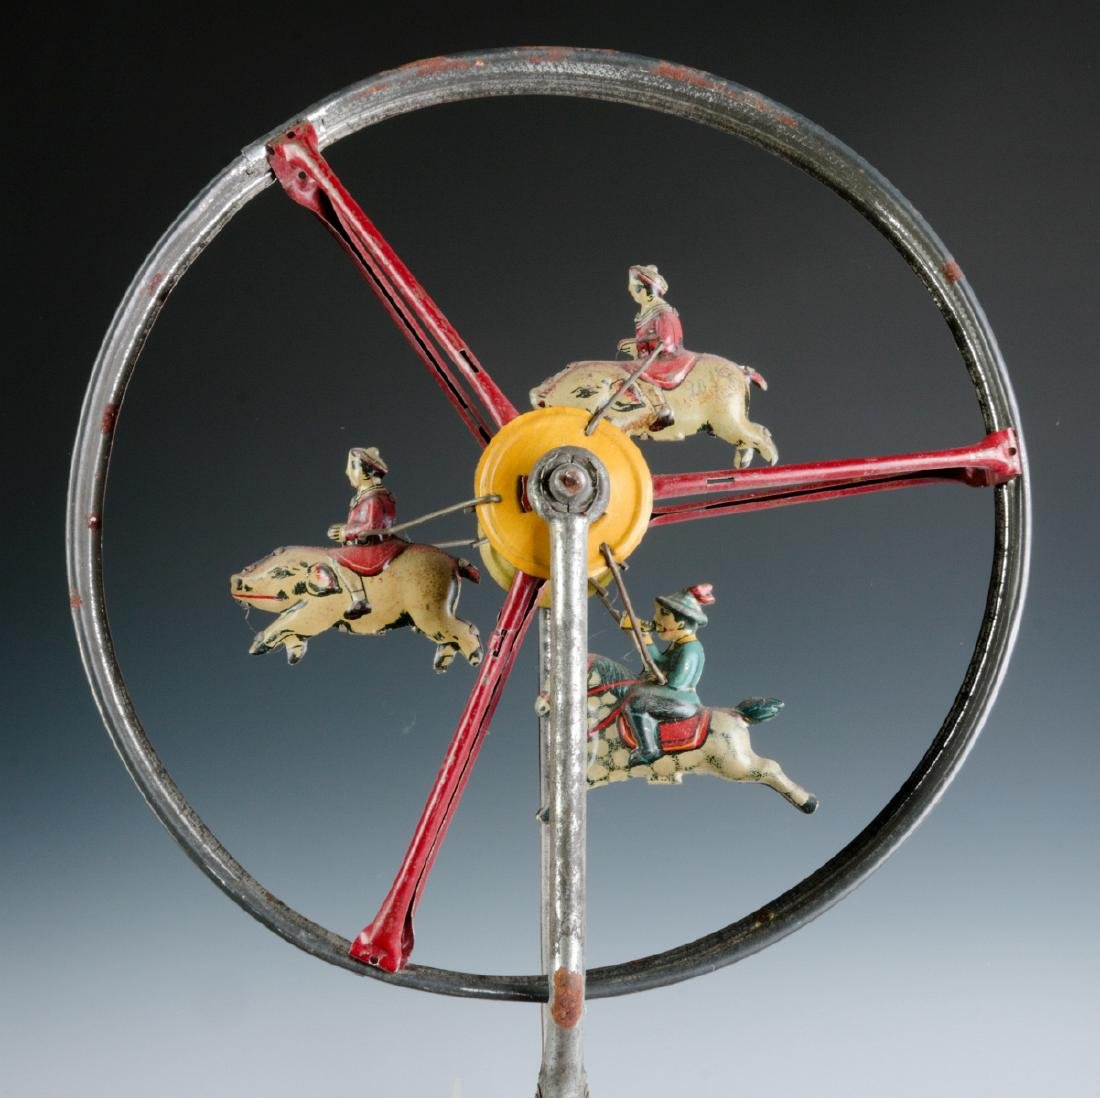 A CHILD'S TIN LITHO ROLL-A-LONG WHEEL TOY C. 1900 - 2